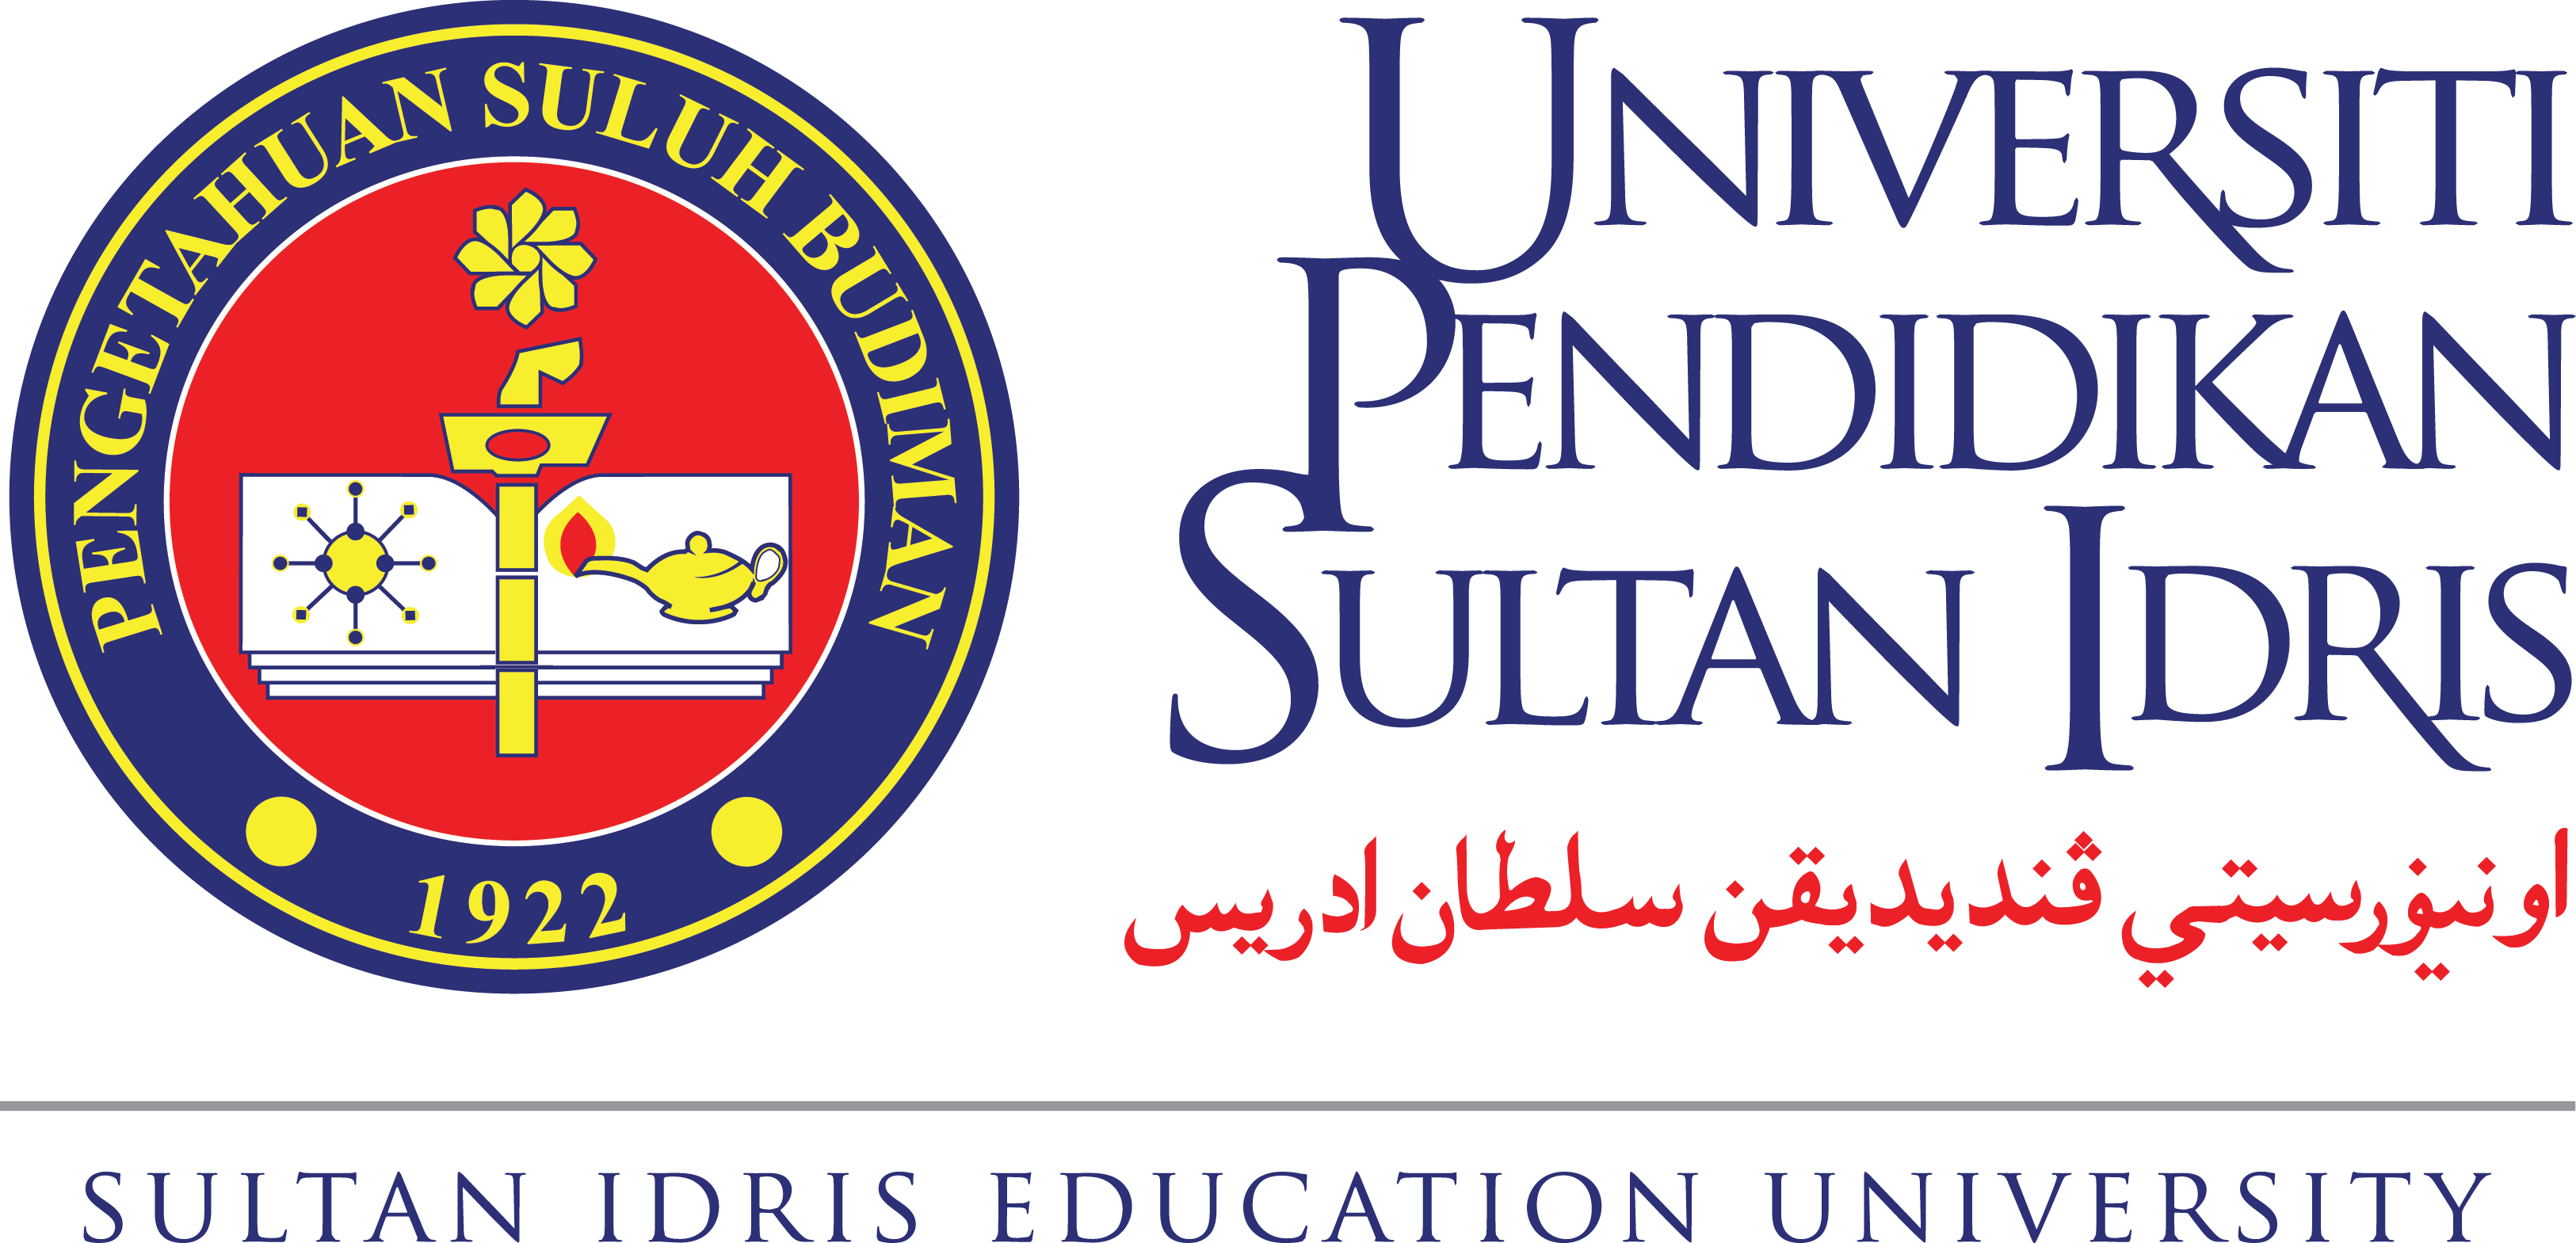 Universiti Pendidikan Sultan Idris